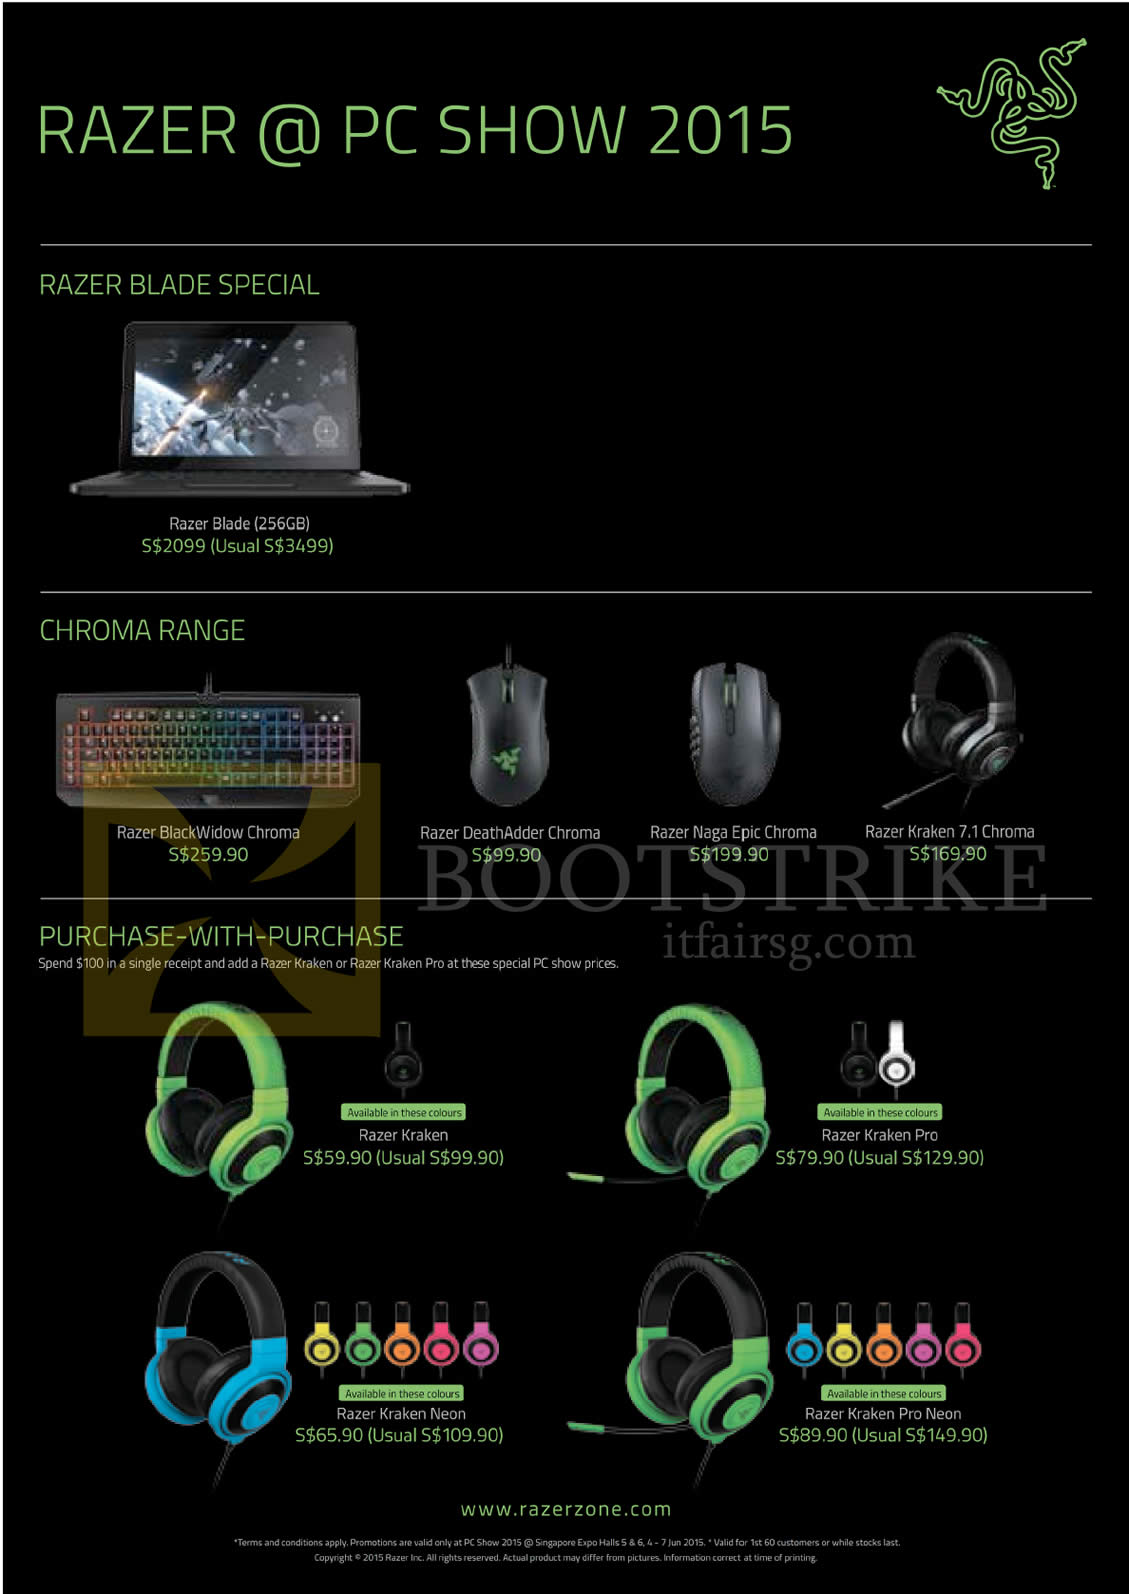 Razer Blade Notebook Chroma Range Keyboard Mouse Pc Show